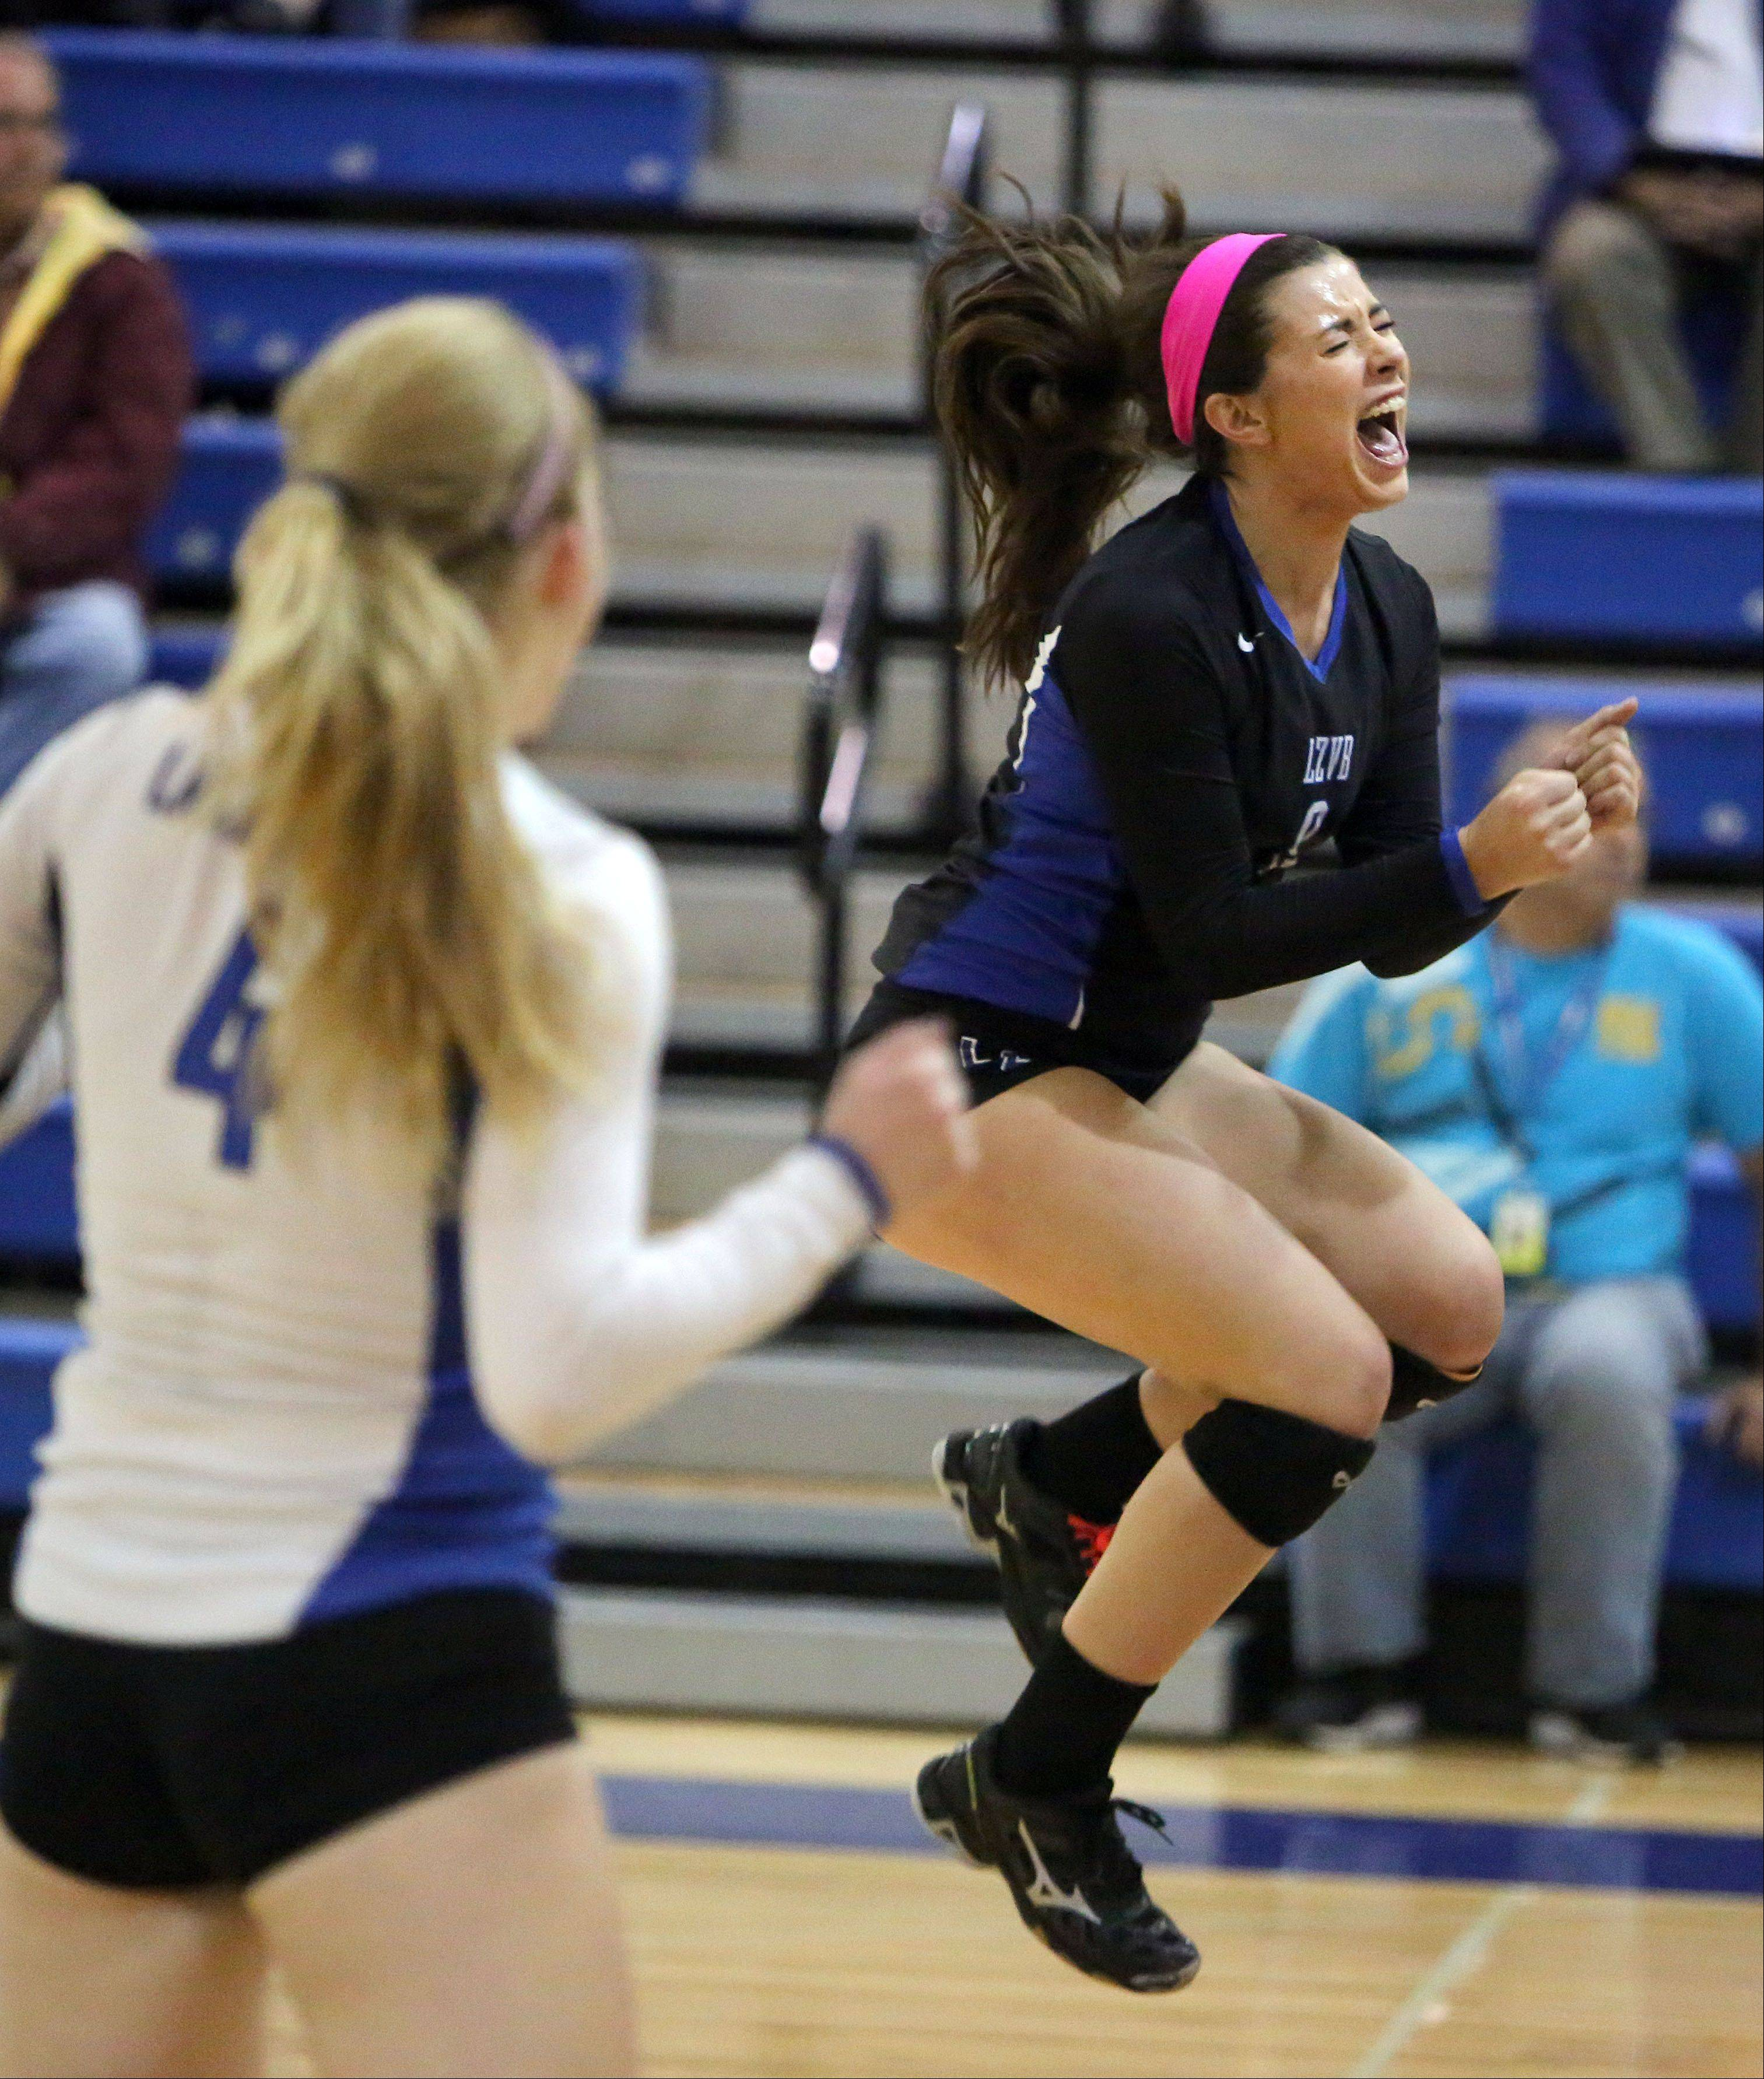 Lake Zurich�s Ashley Dina celebrates after winning a point during the Bears� NSC title win over host Lakes on Wednesday night.